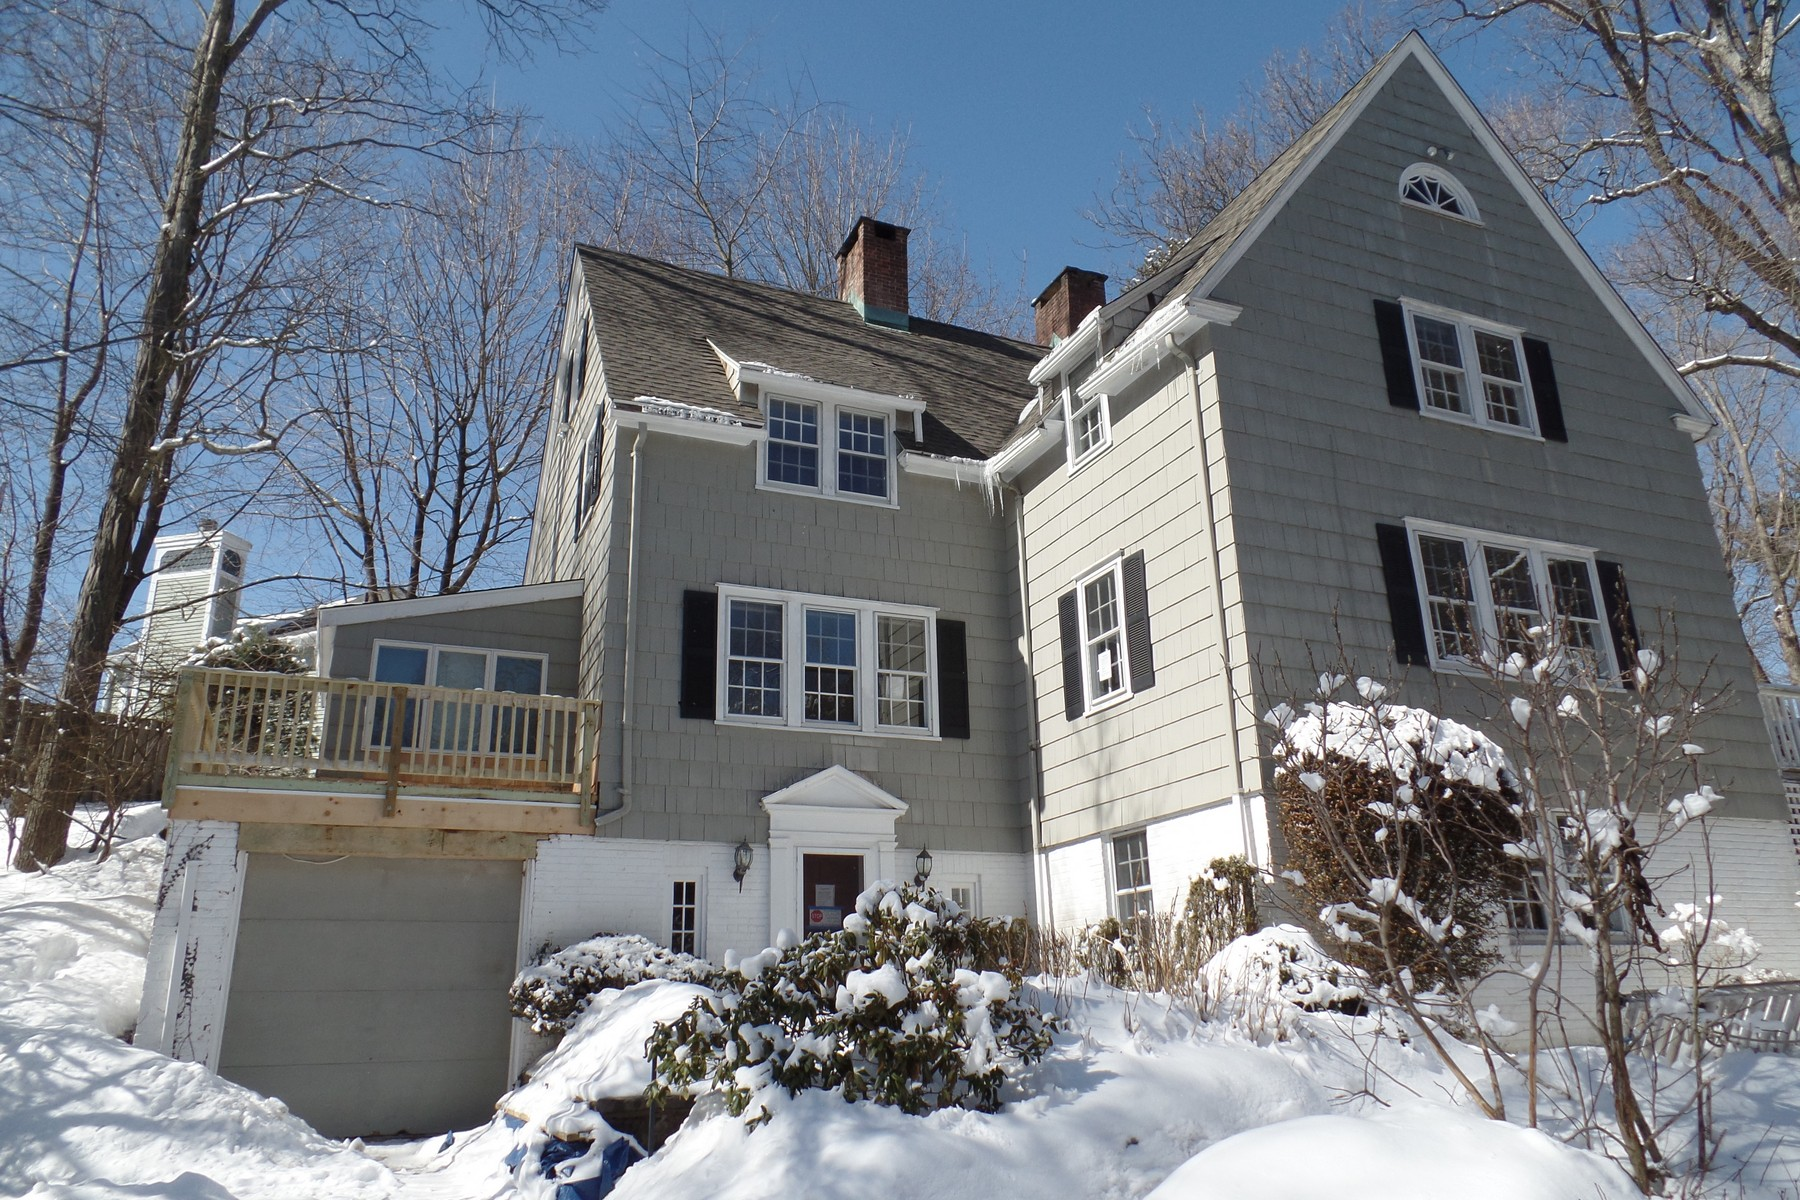 Single Family Home for Sale at Classic Elegant Colonial with Condo Convenience 23 Sawmill Road 13 Norwalk, Connecticut 06851 United States